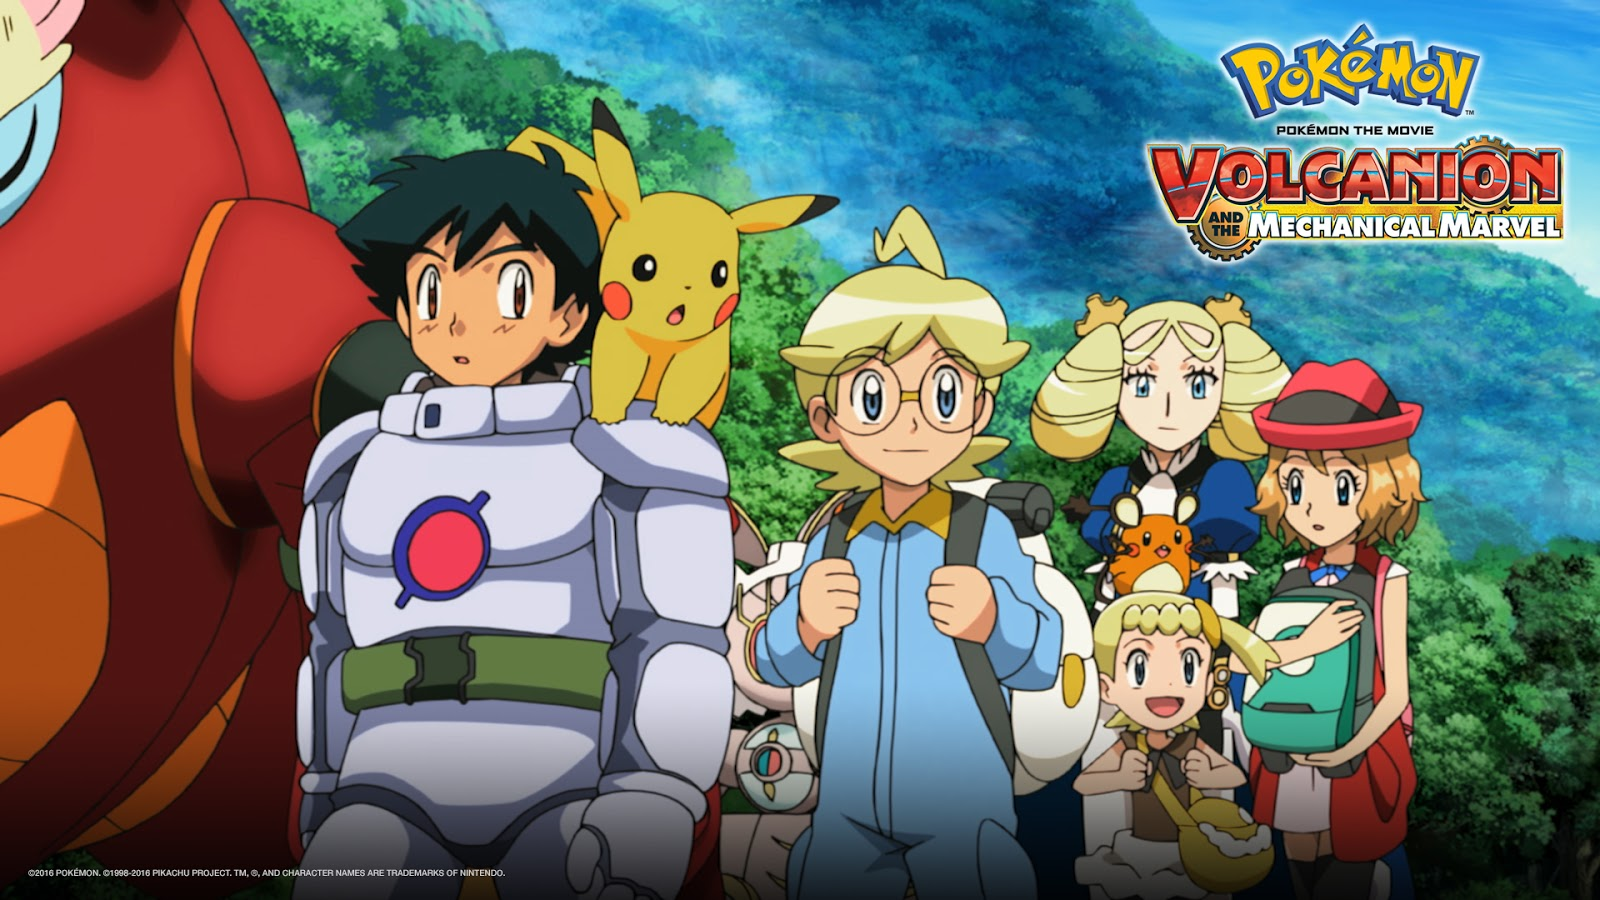 Manga Bring Pokemon Volcanion And The Mechanical Marvel To The